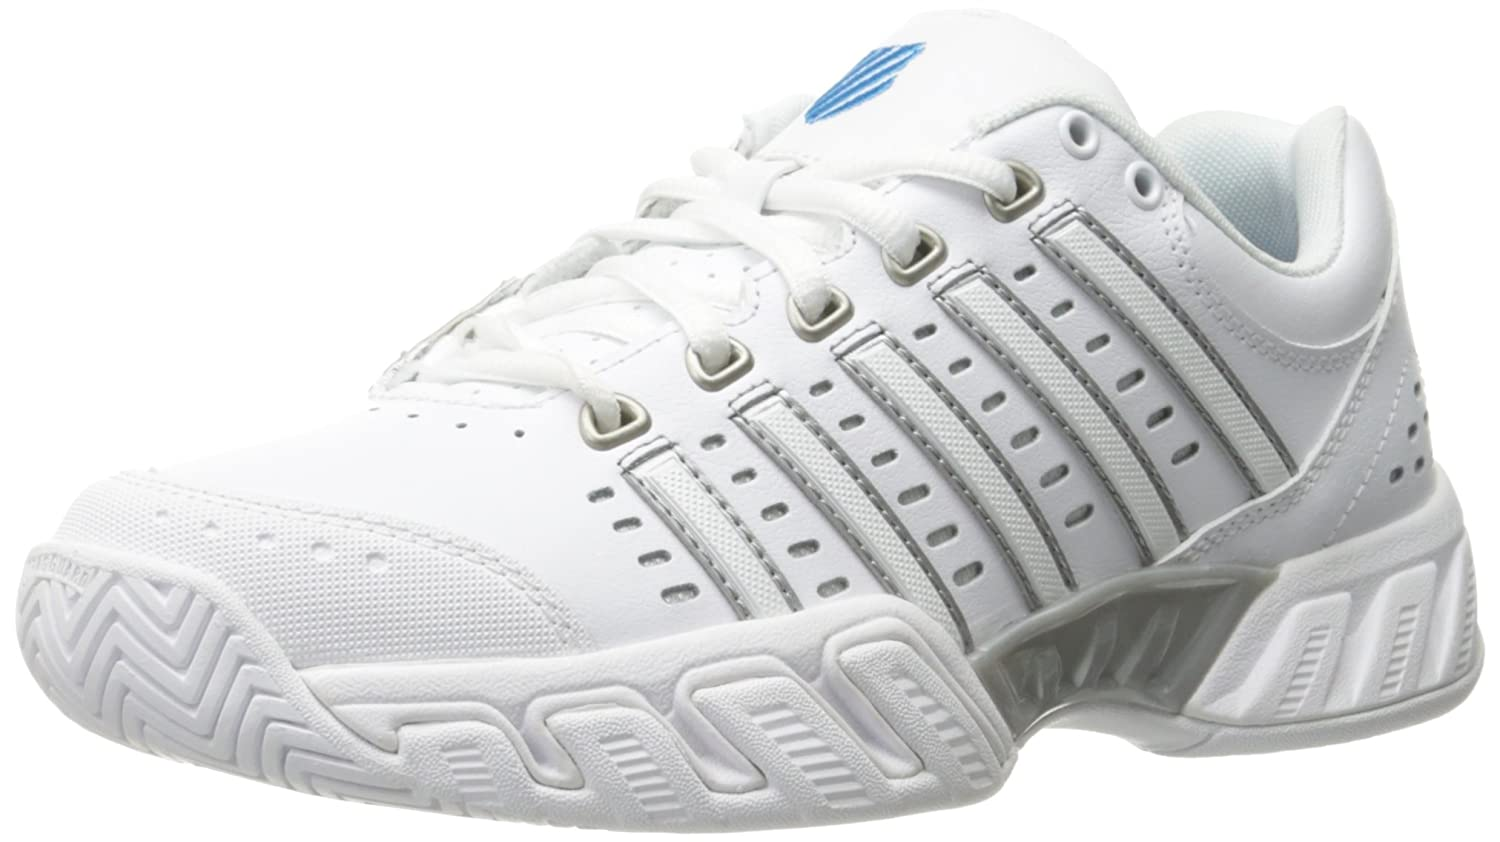 K-Swiss Women's Bigshot Light Tennis Shoe B01LS81Y9S 9.5 B(M) US|White/Hawaiian Ocean